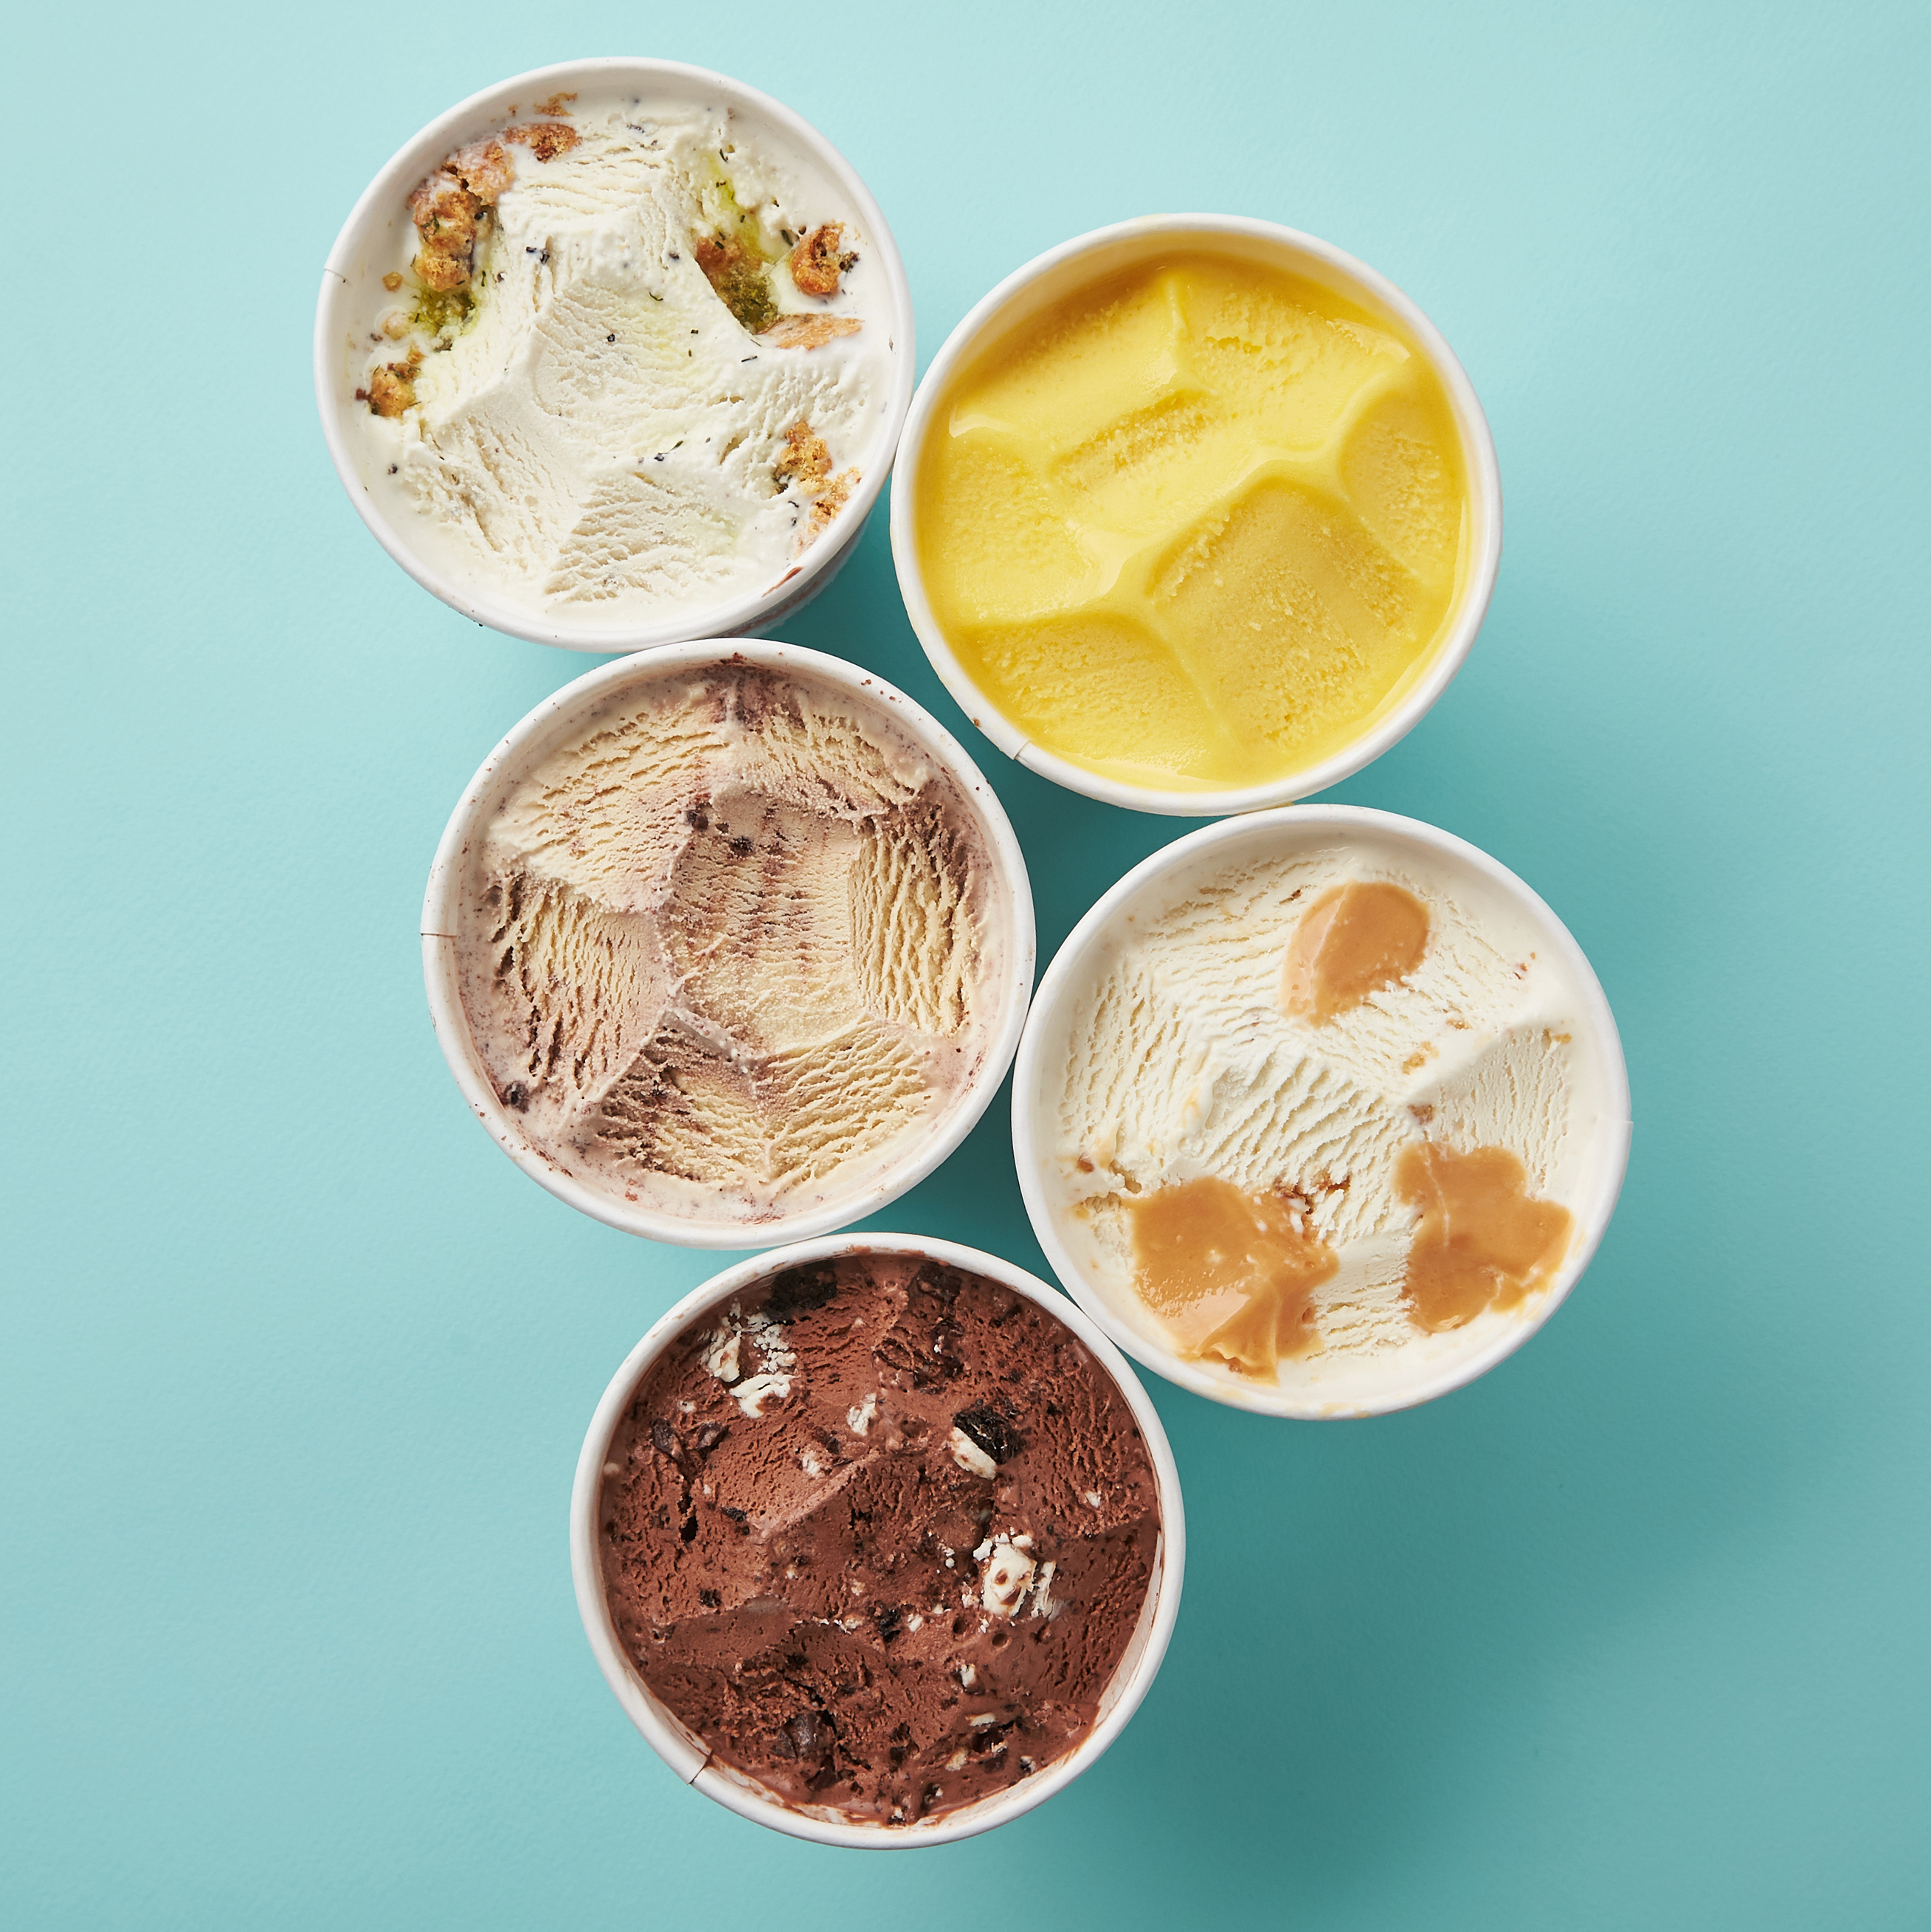 Five pints of ice cream sitting next to each in bright colors